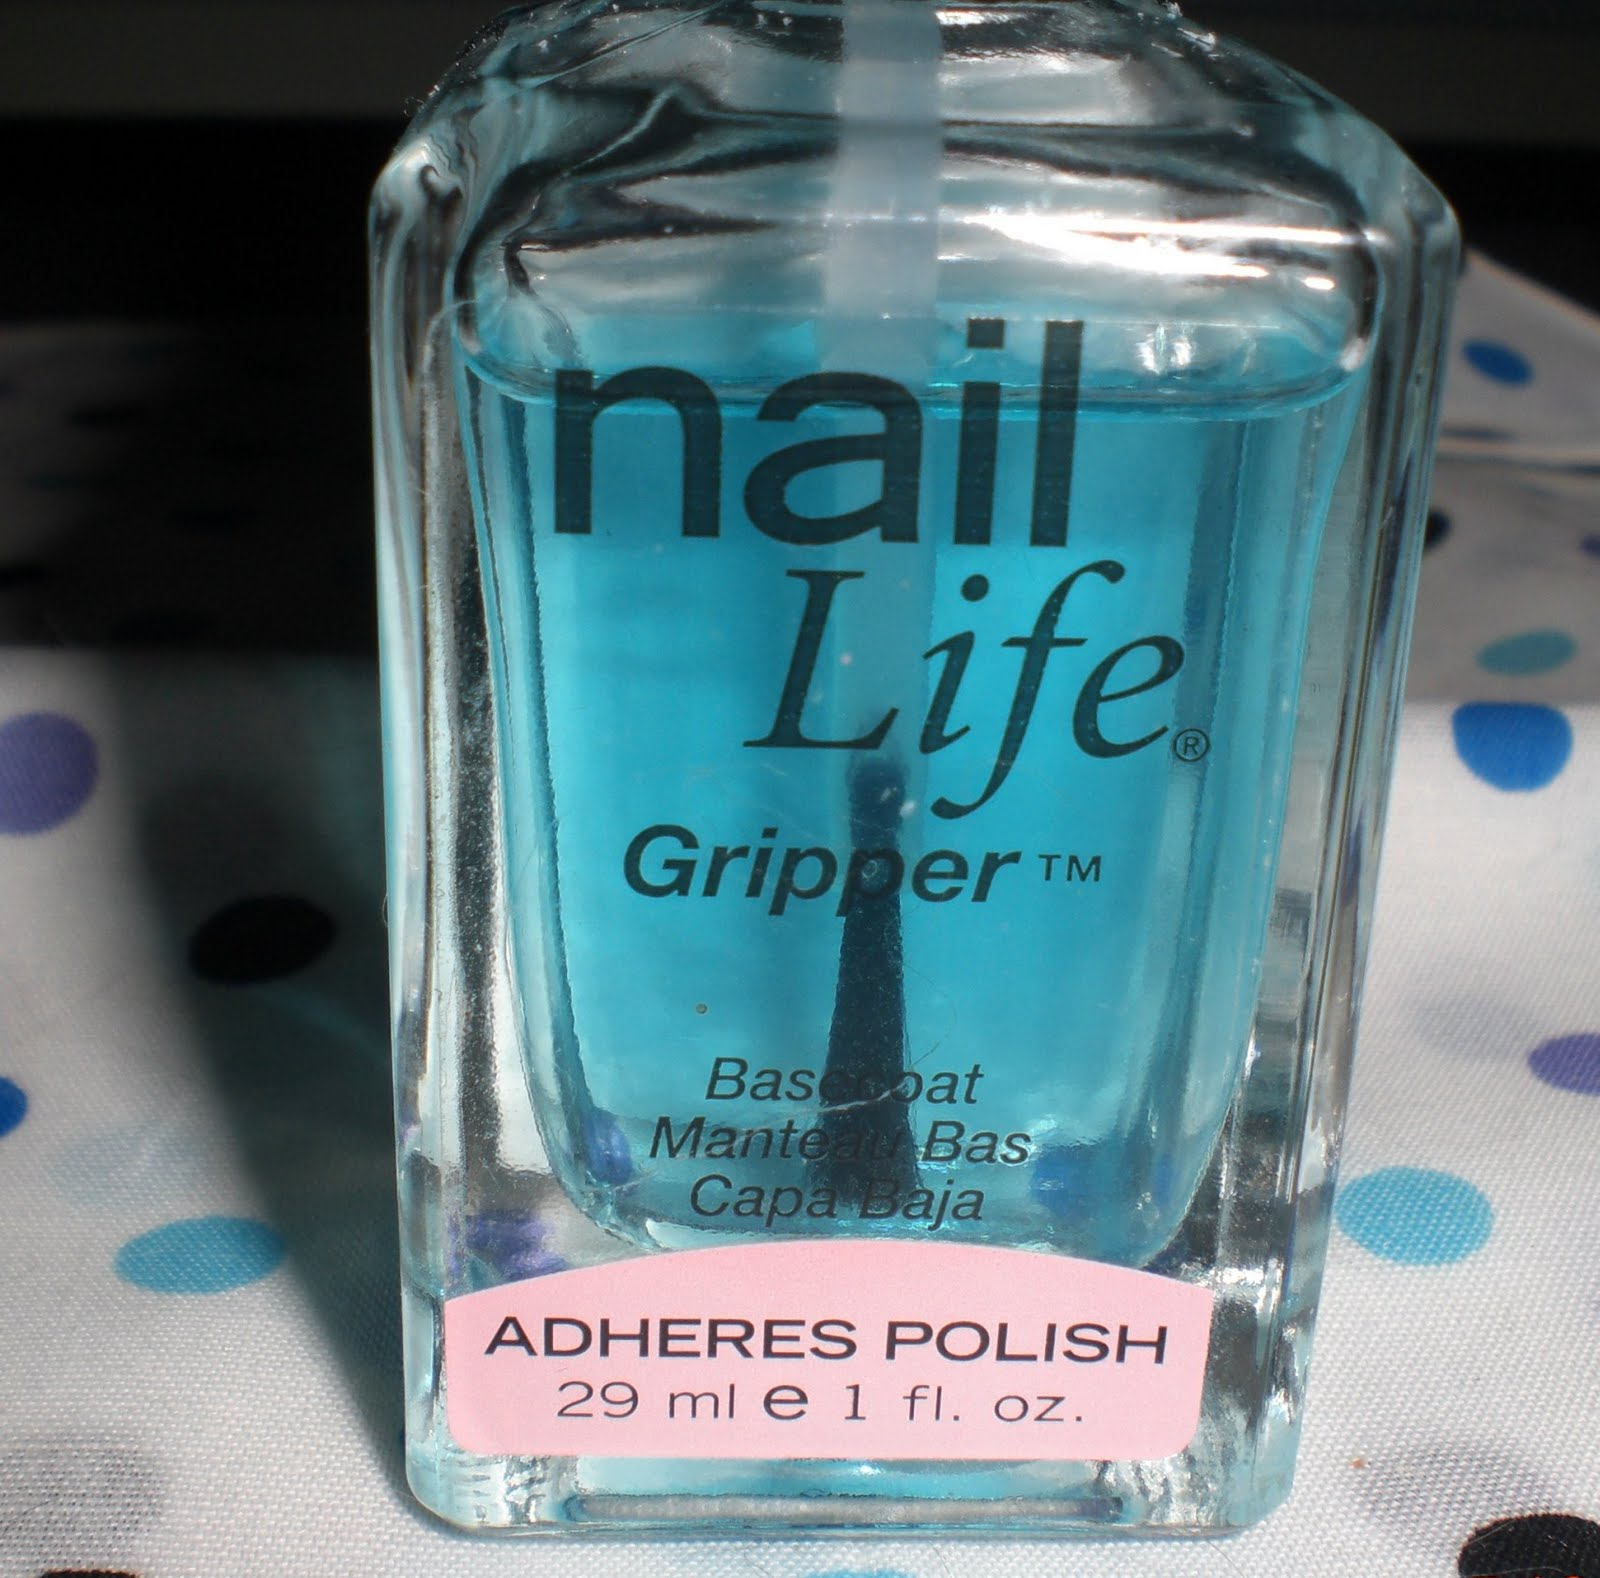 Made Up and Polished: My favorite base coat - Nail Life Gripper